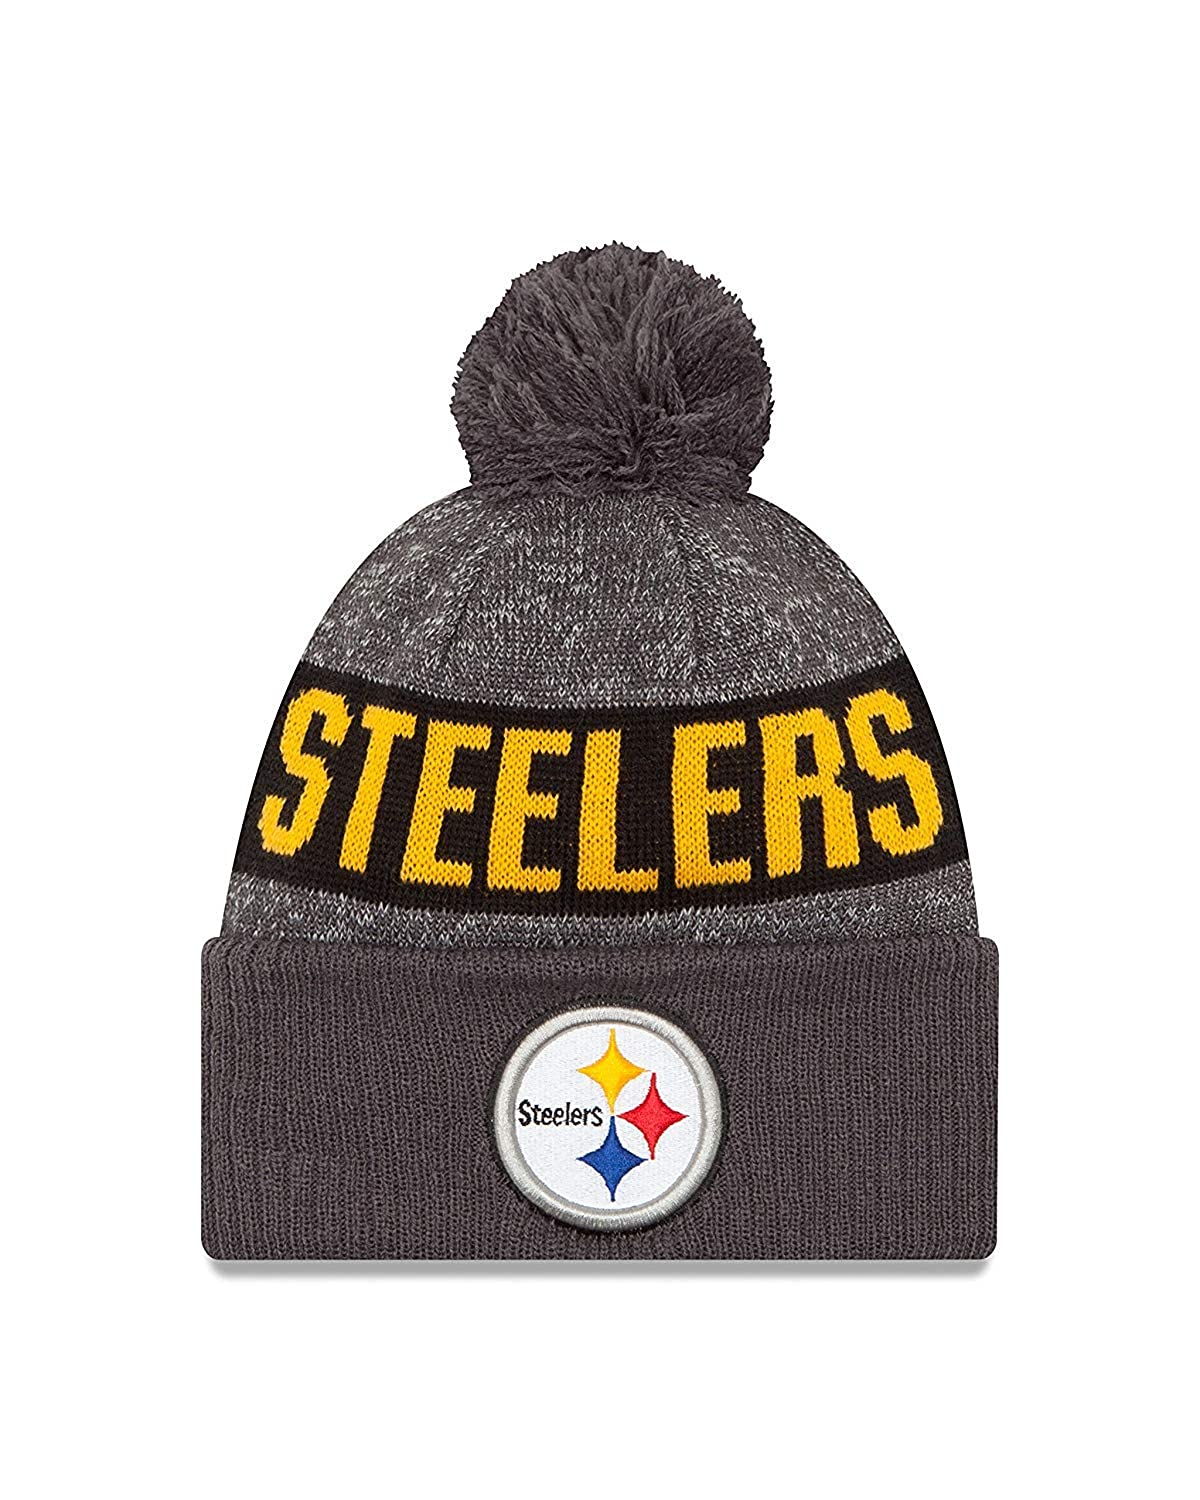 ea2924eb official photos acbd4 542be new era nfl pittsburgh steelers sideline ...